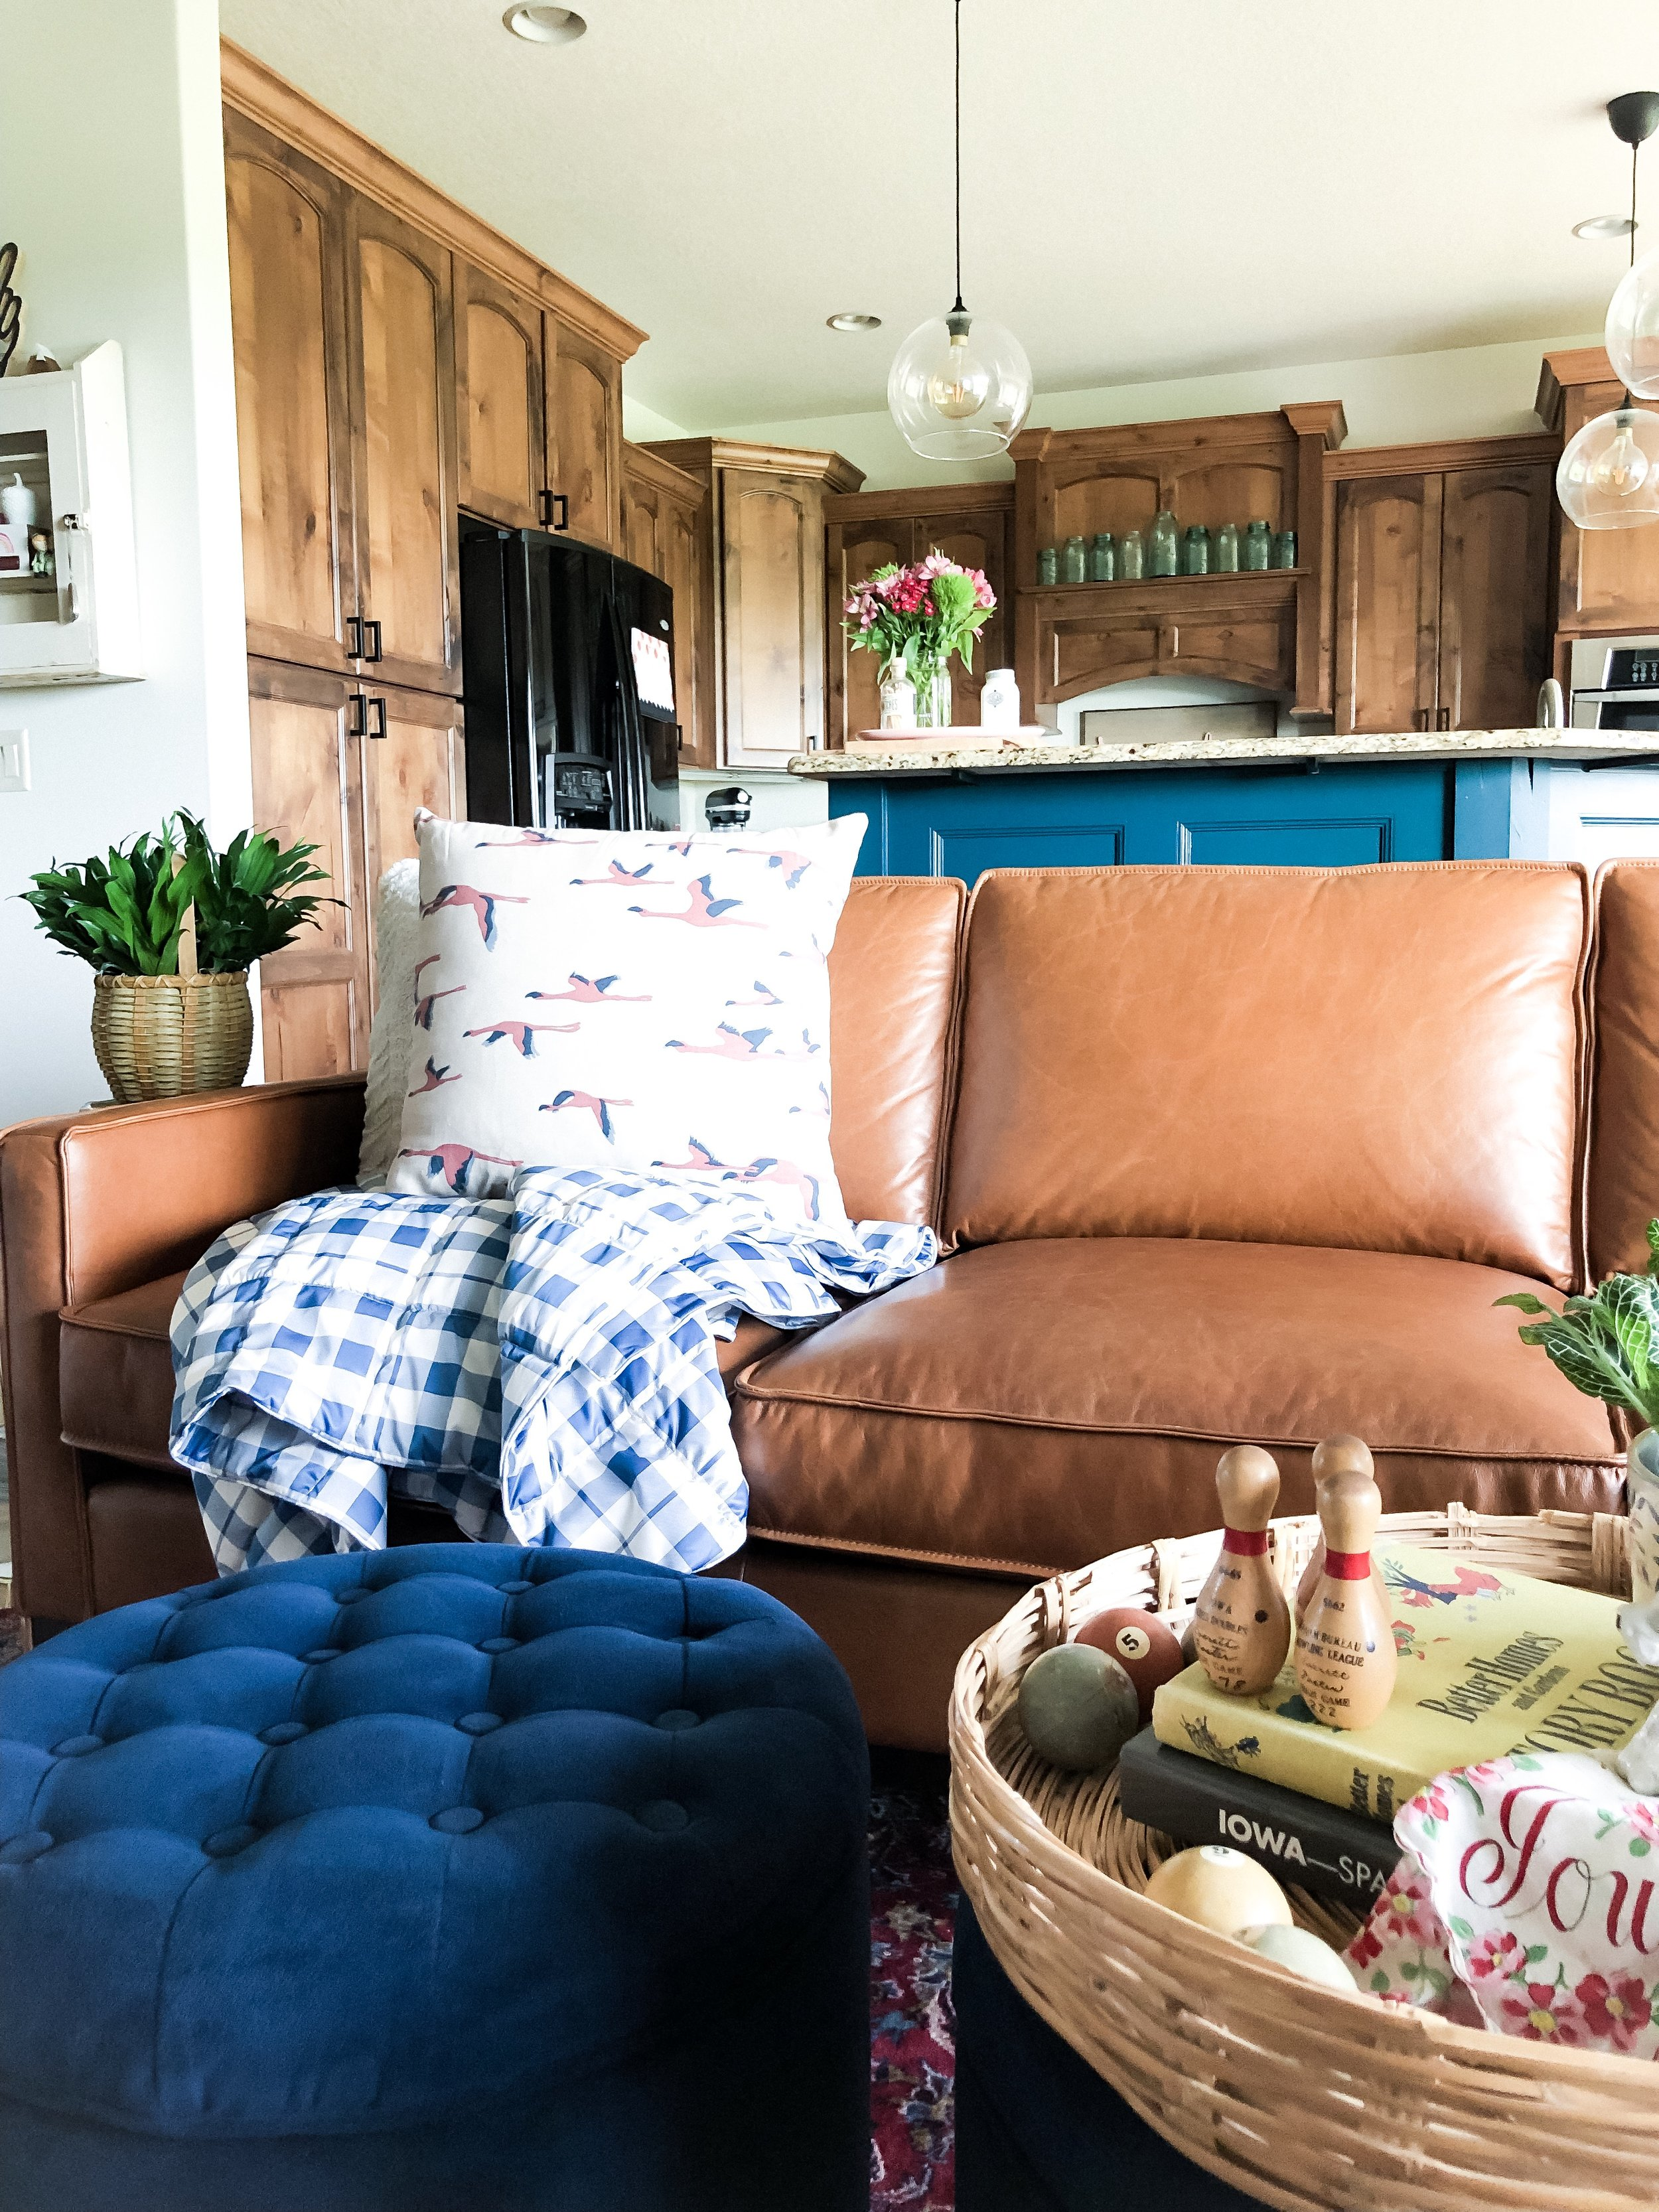 Create More Space with New Living Room Furniture from hprallandco.com! | H.Prall and Co. Interior Decorating